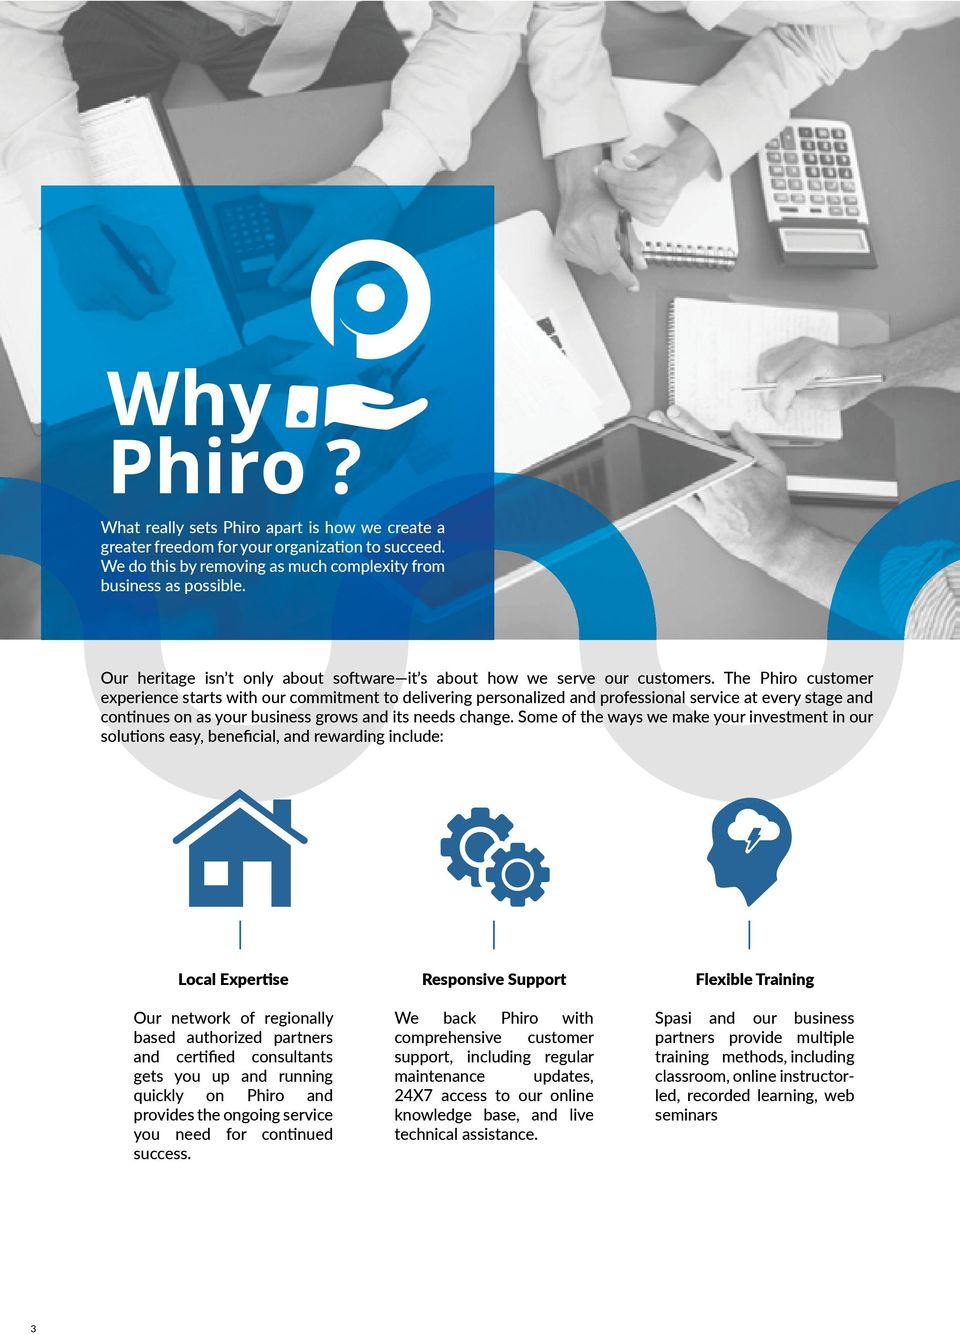 The Phiro customer experience starts with our commitment to delivering personalized and professional service at every stage and continues on as your business grows and its needs change.